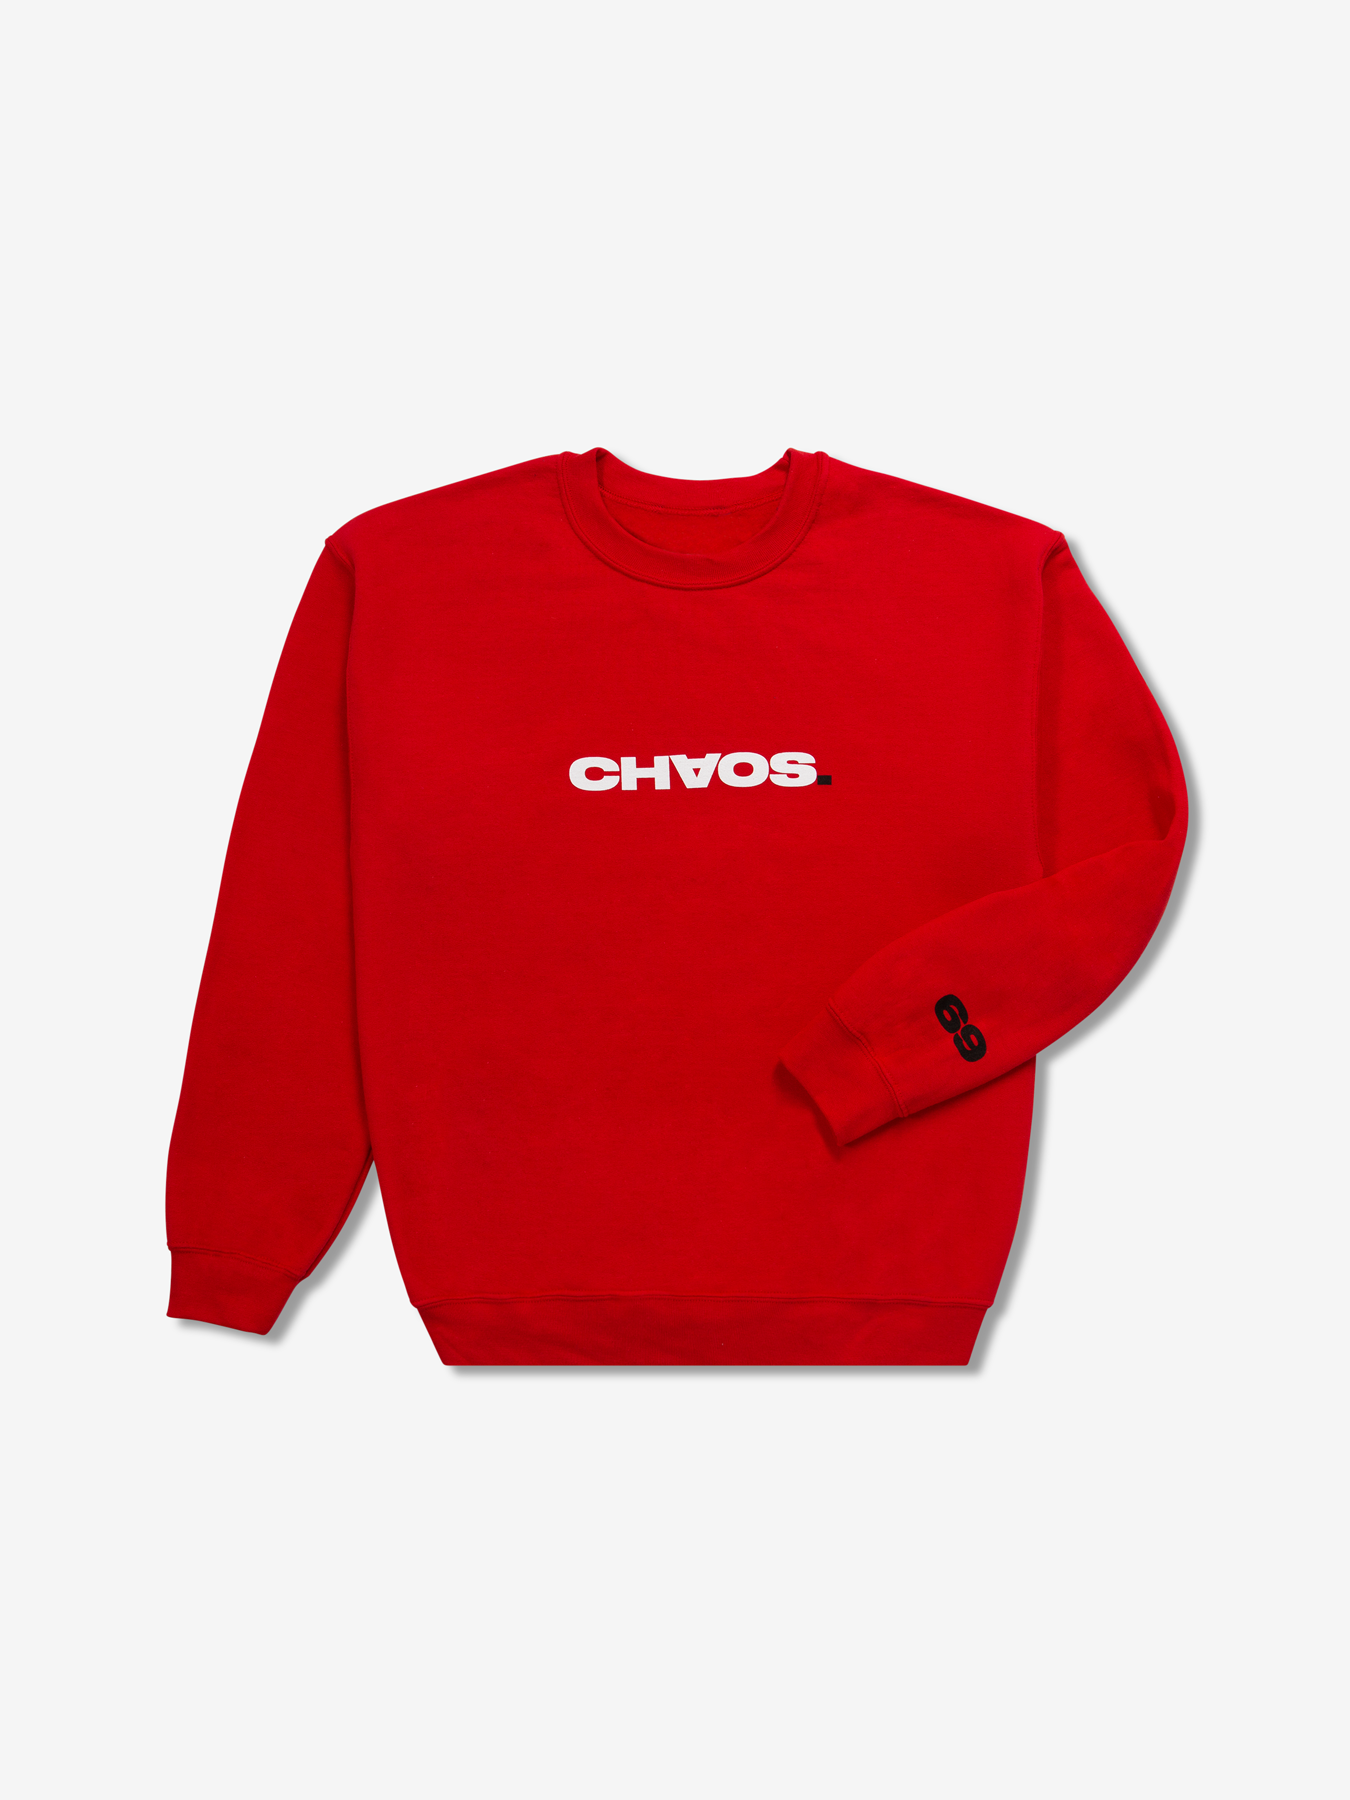 Red Chaos SixtyNine Sweatshirt